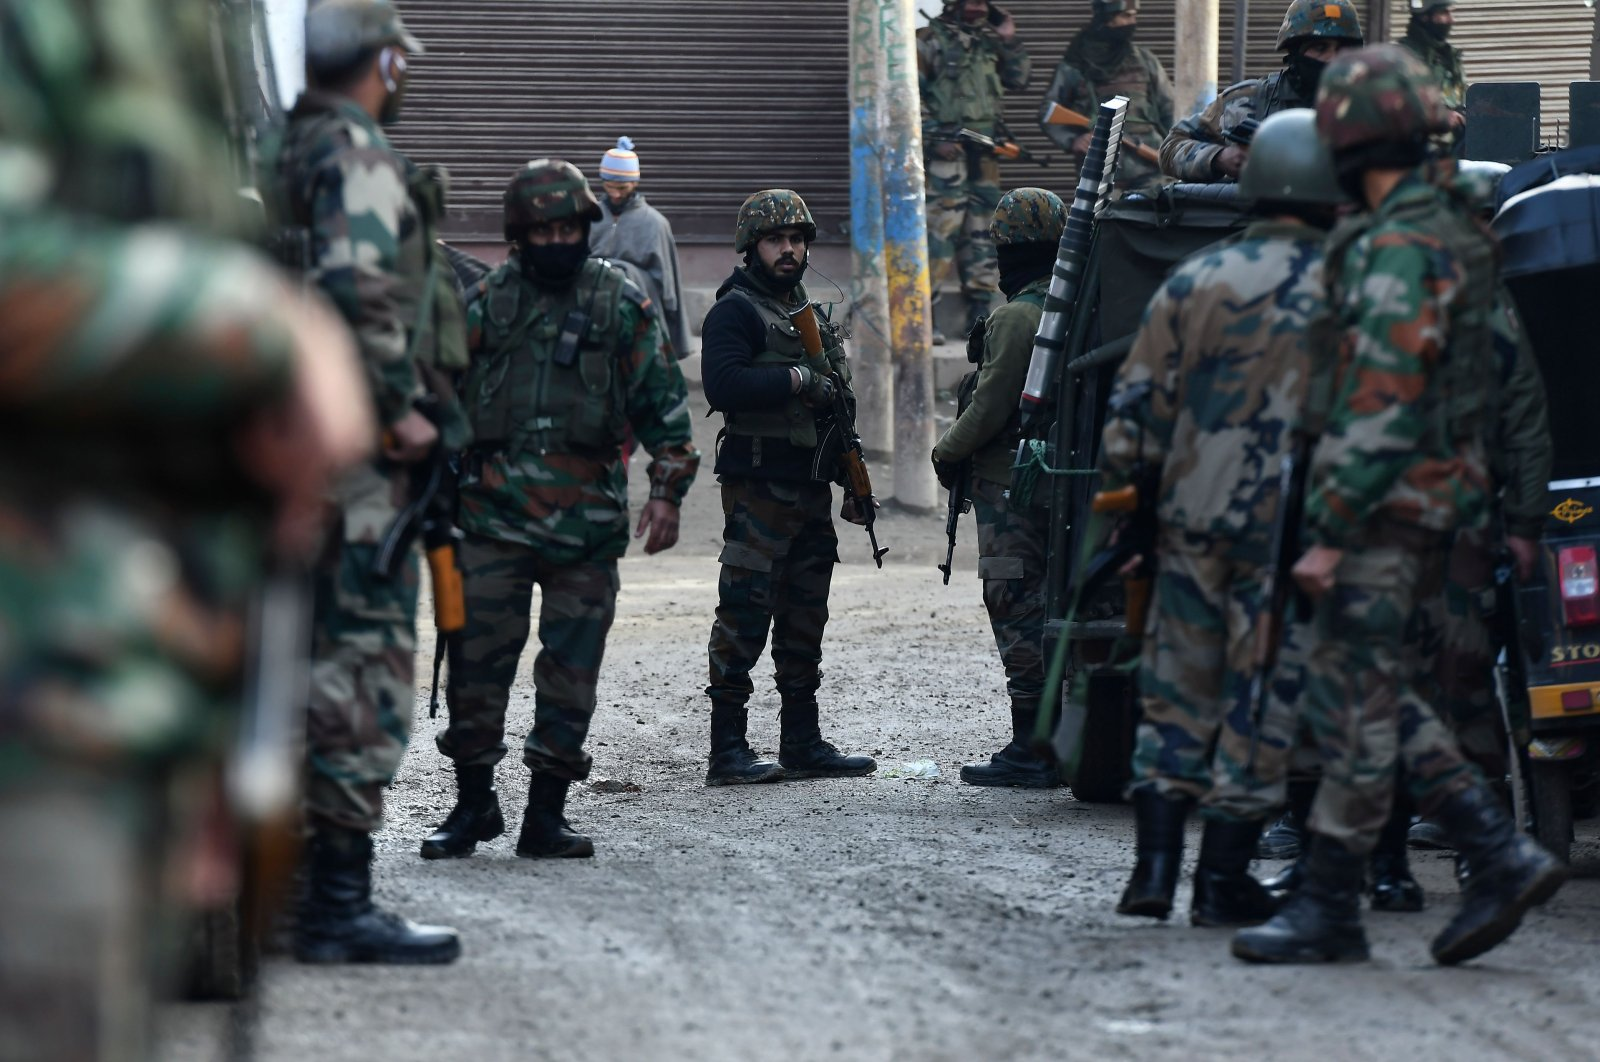 Indian army soldiers stand guard on the outskirts of Srinagar, Indian-controlled Kashmir, Nov. 26, 2020. (AFP Photo)